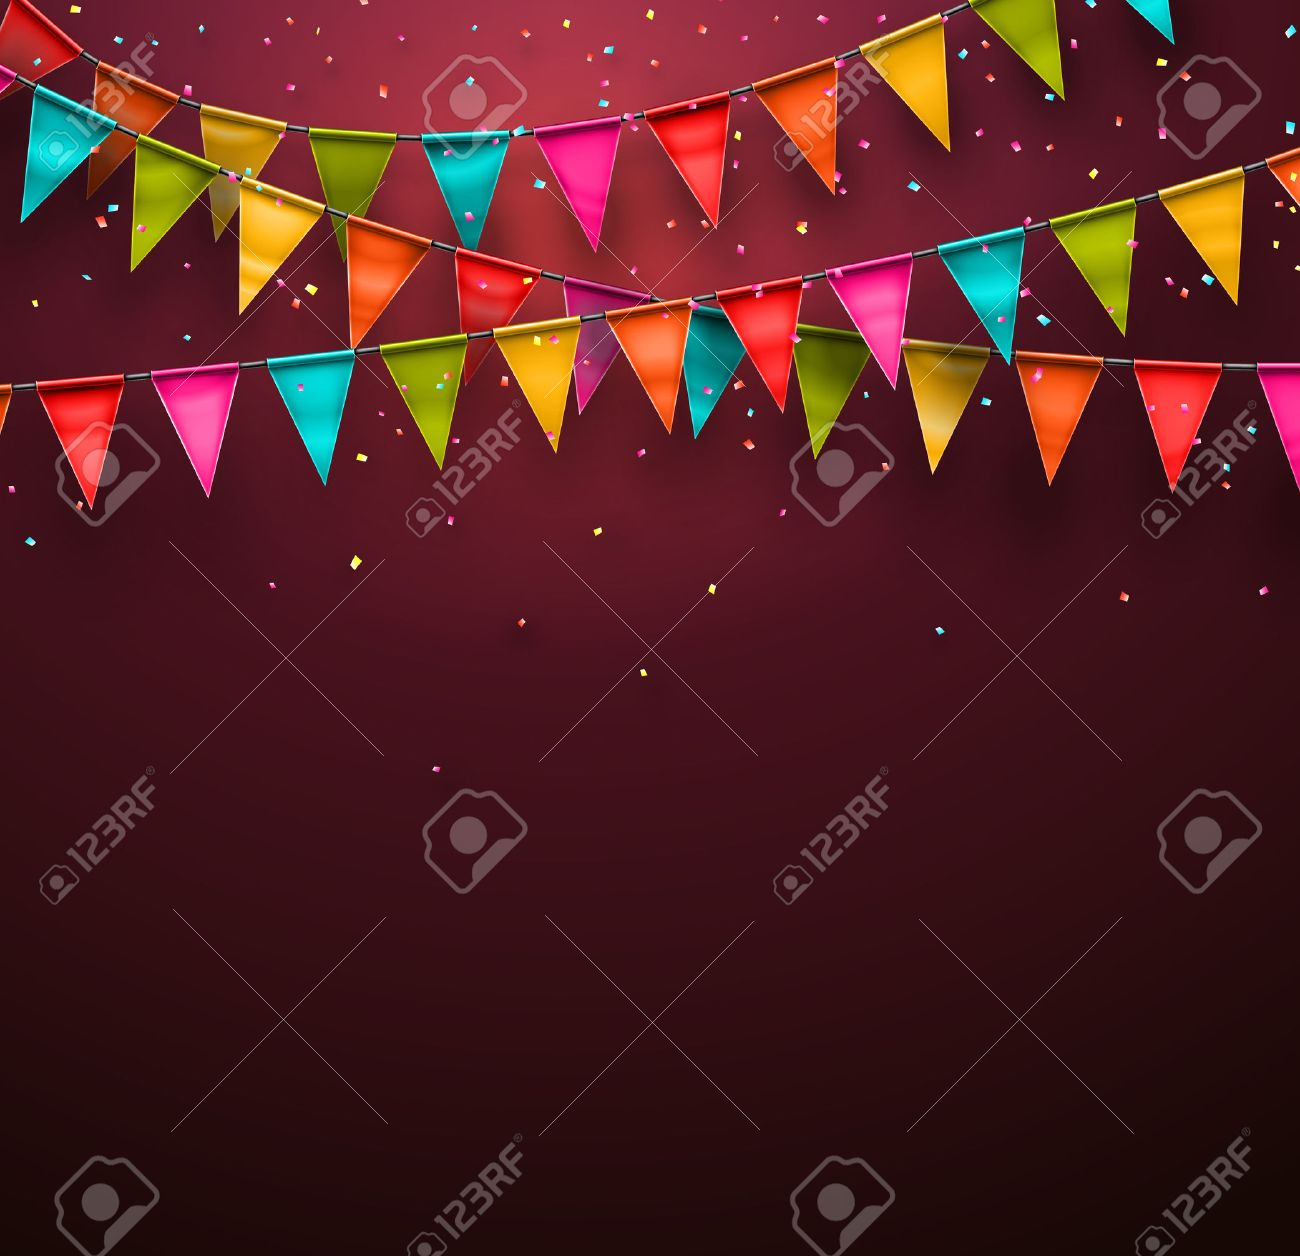 Festive background with flags Stock Vector - 27704082